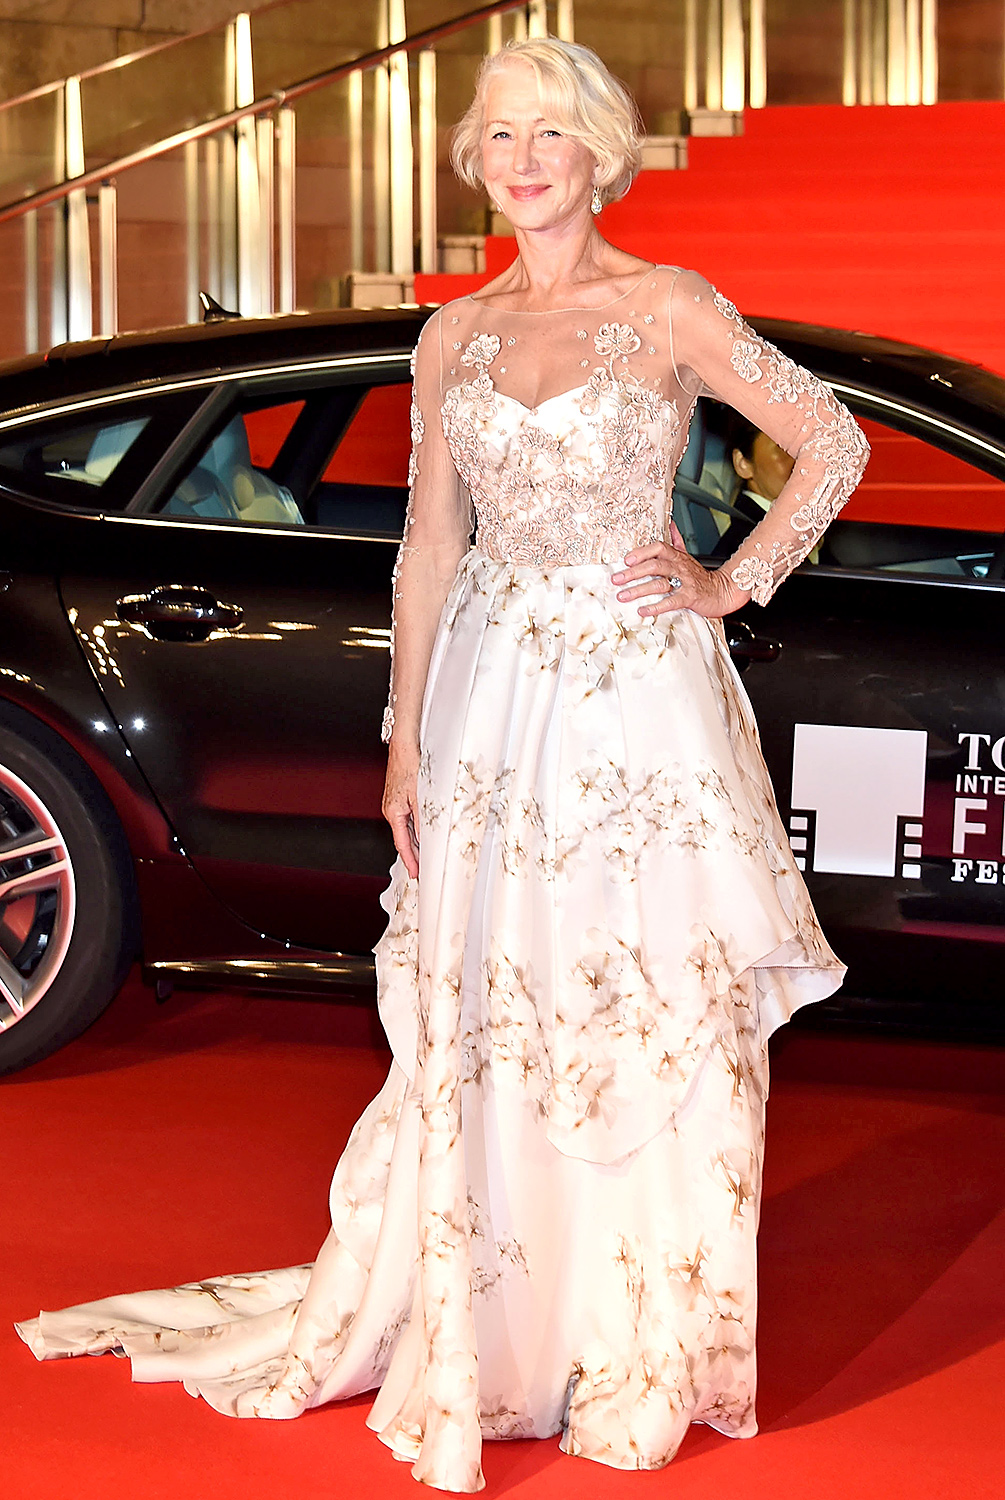 1445helen-mirren-in-badgley-mischka-tokyo-international-film-festival-2015-opening-ceremony